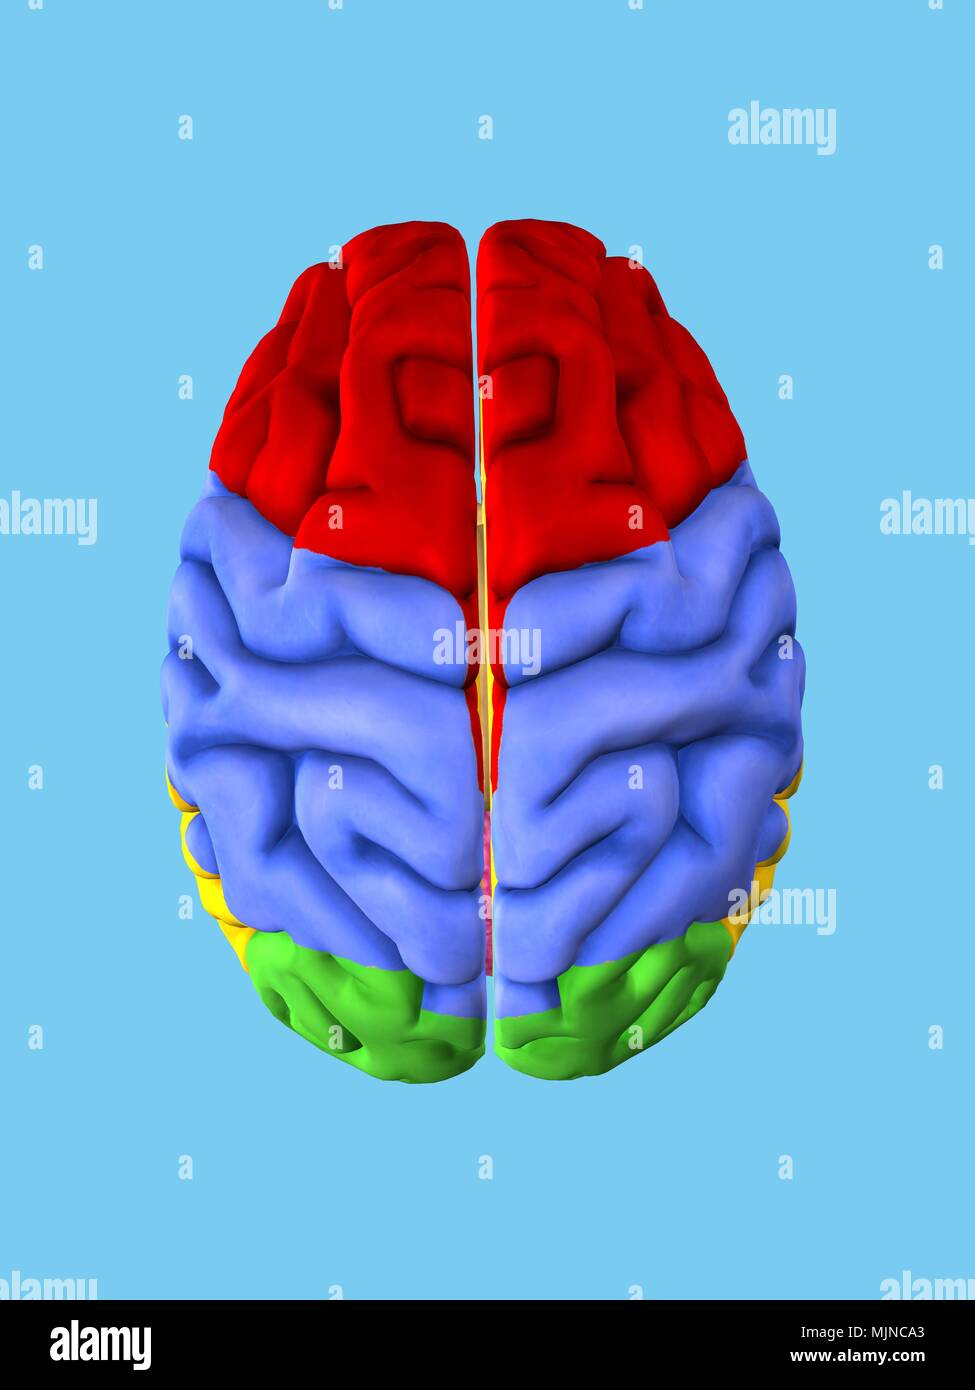 Regions of the Brain - Stock Image